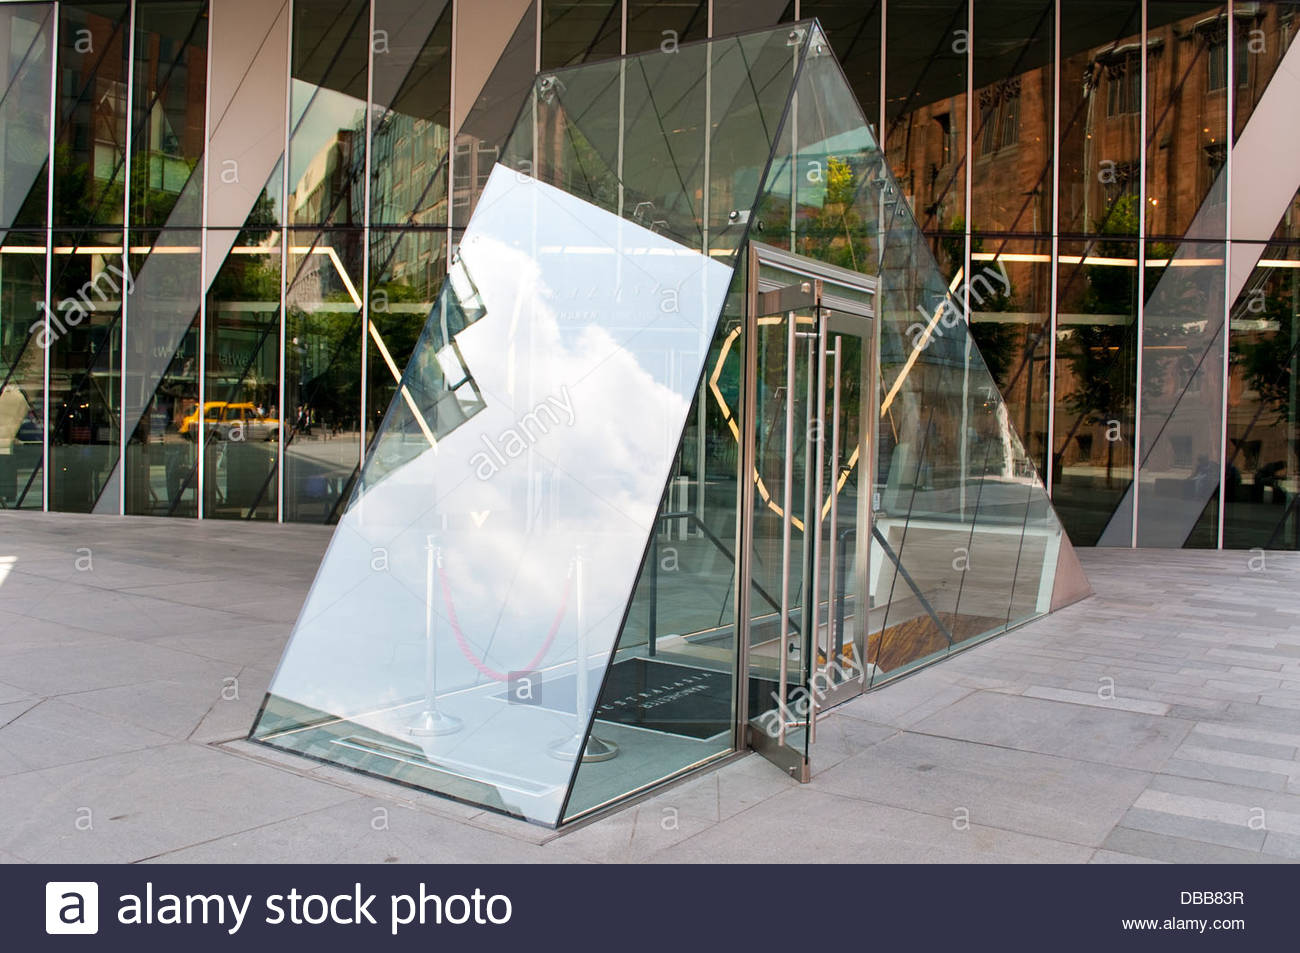 Glass triangle of Australasia restaurant, The Avenue, Spinningfields, Manchester, UK - Stock Image